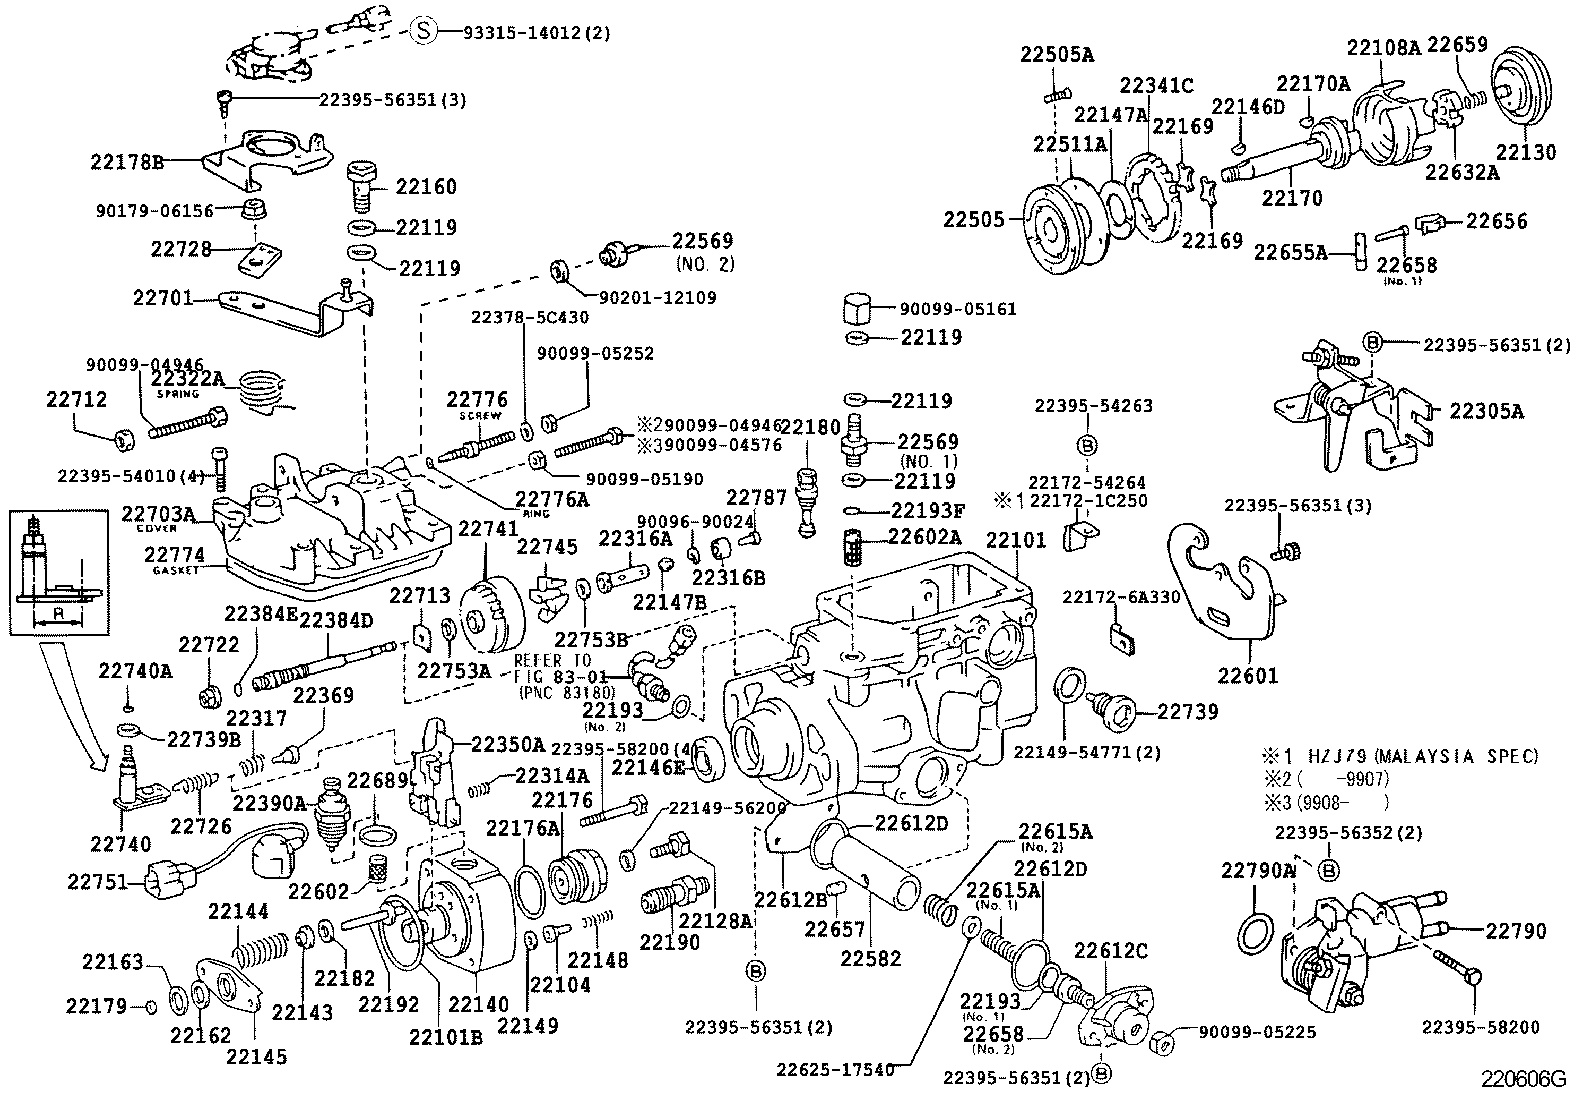 Toyota Fj Cruiser Wiring Diagram Motor Libraries Engine Library